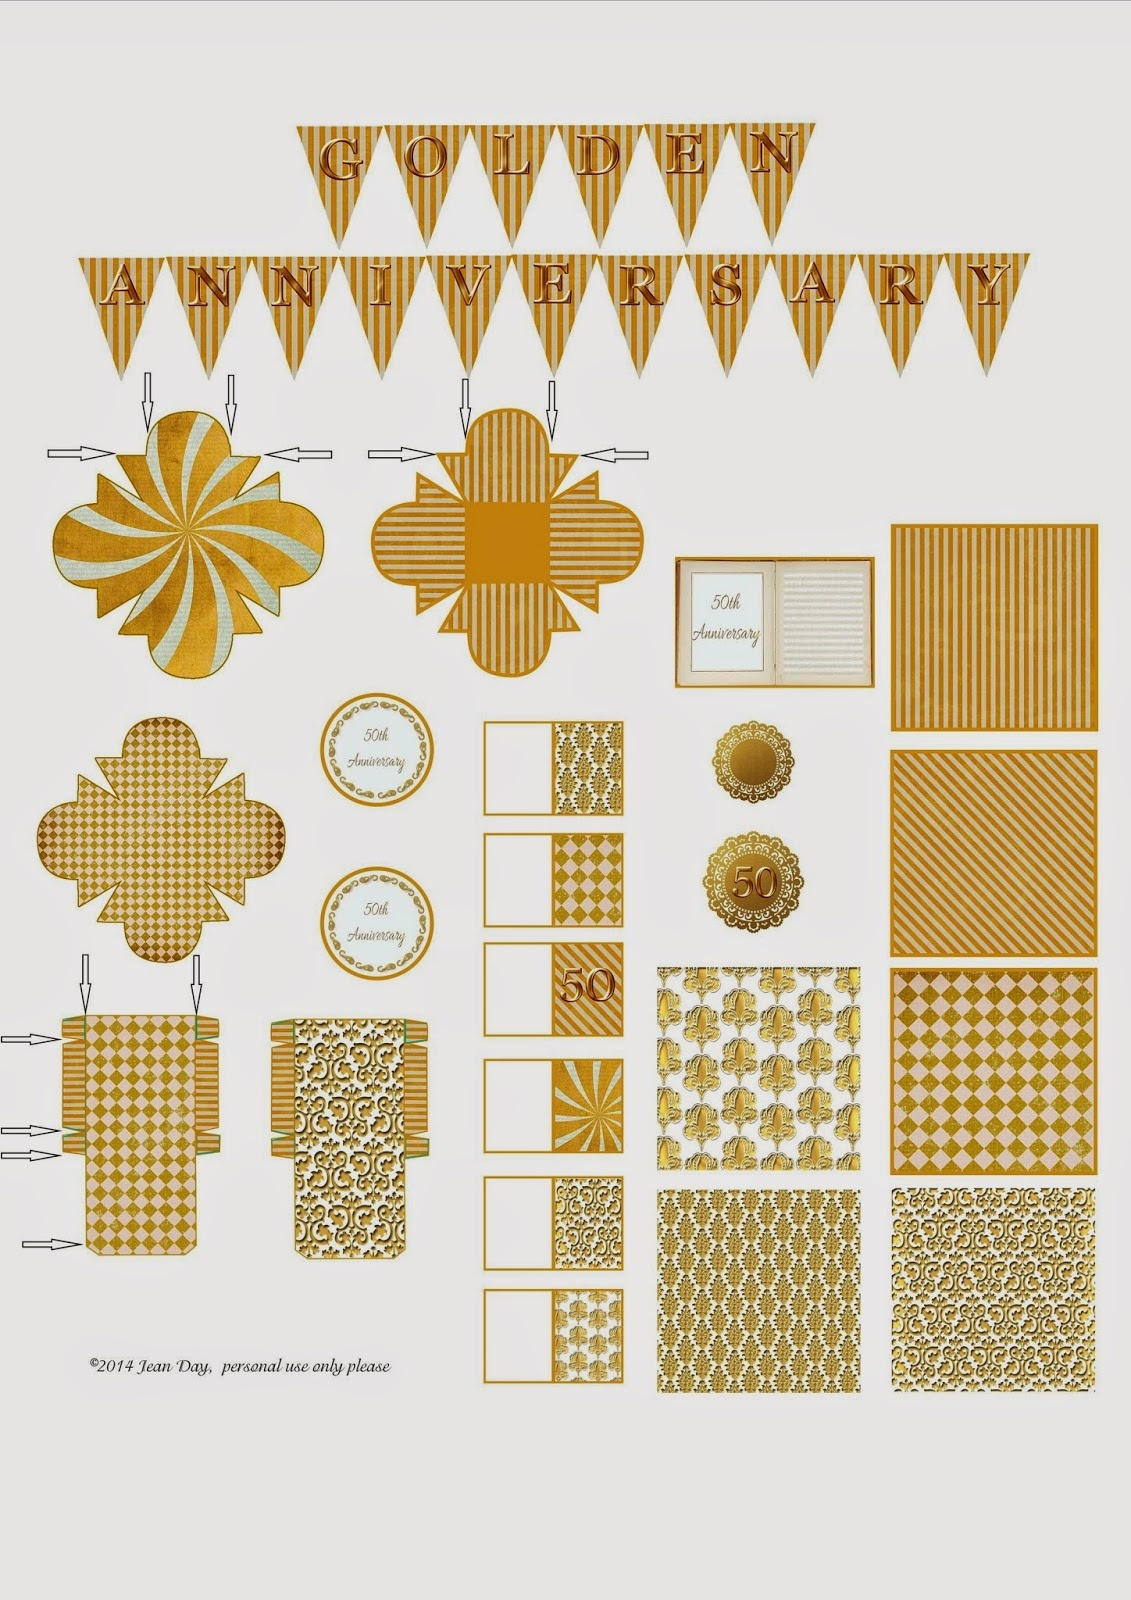 Jdayminis, 1:12 & 1:48 Scale Minis, Freebies & Inspiration: Free - Free Anniversary Printables